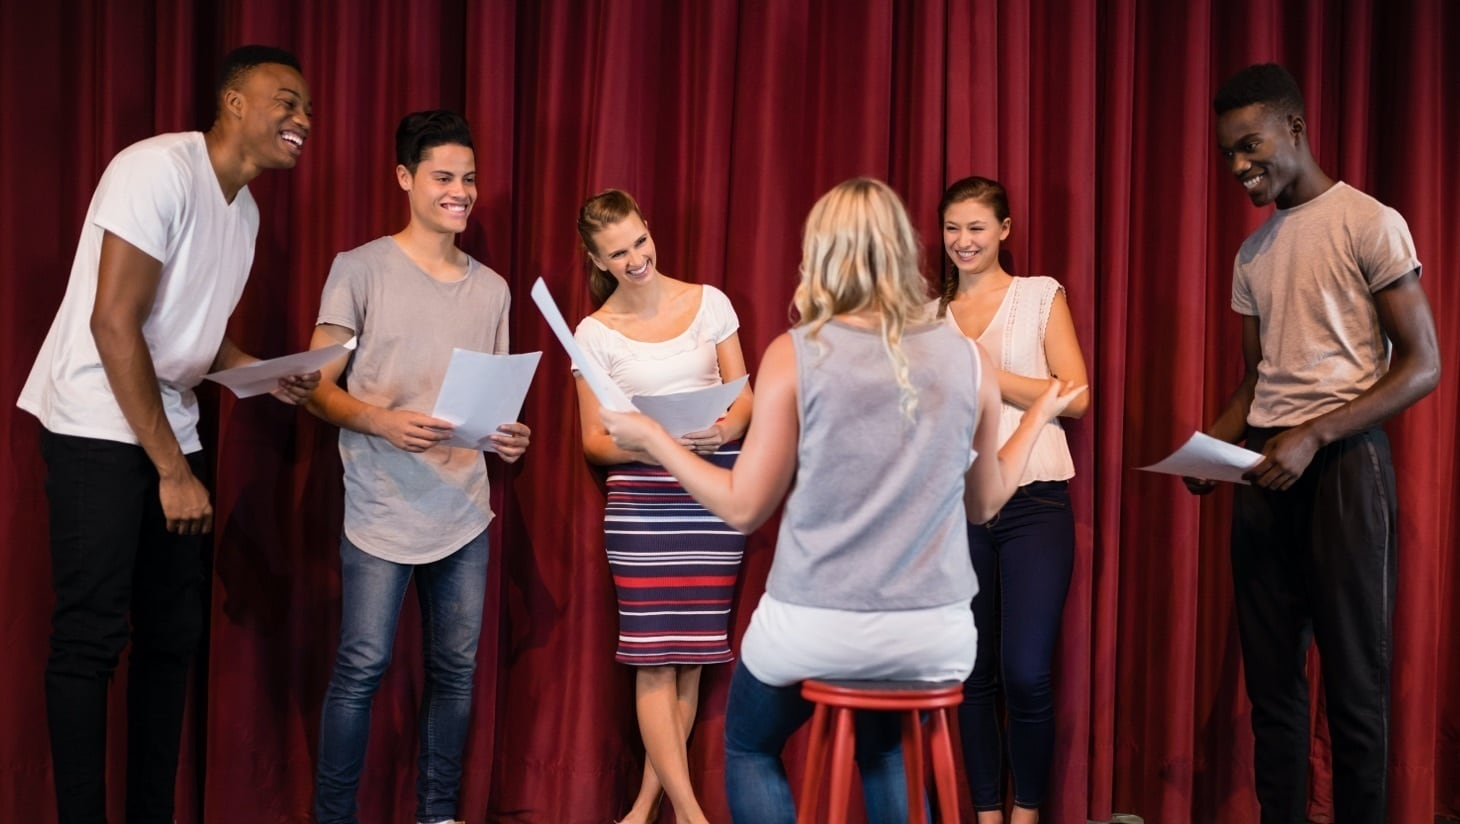 Actors learning a script and rehearsing